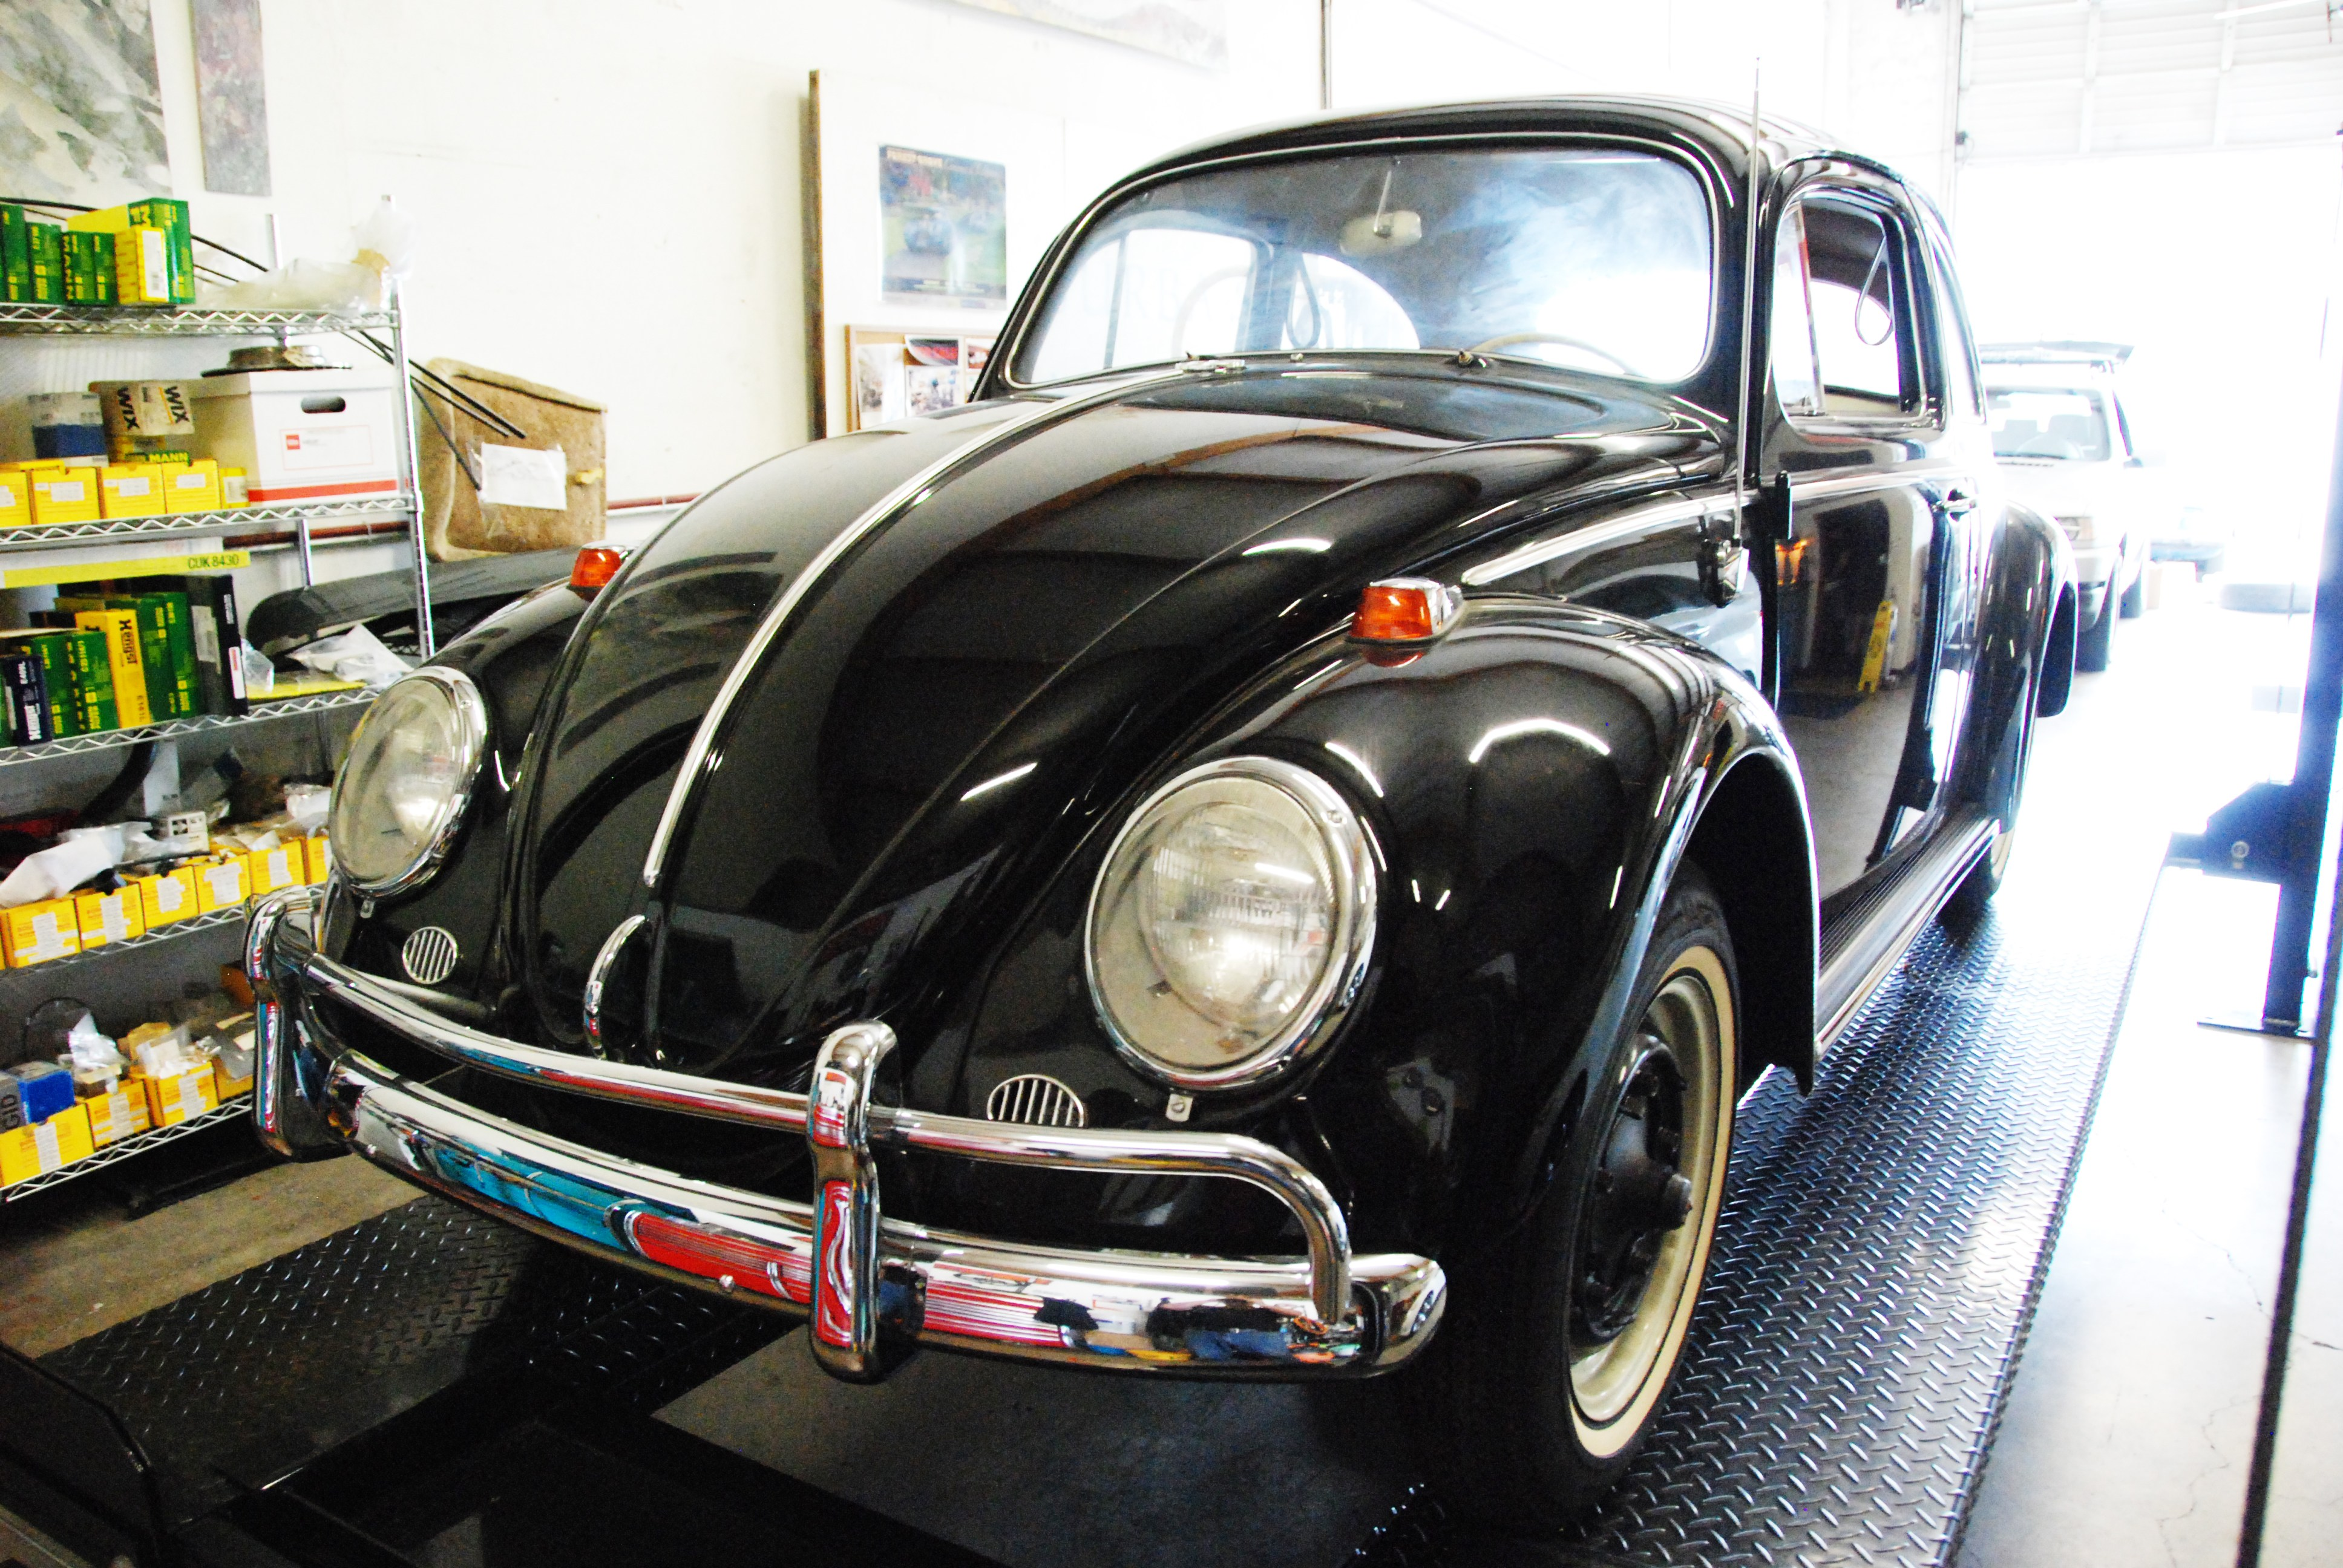 forrest grove concours to show 22 mile 1964 vw beetle journal. Black Bedroom Furniture Sets. Home Design Ideas